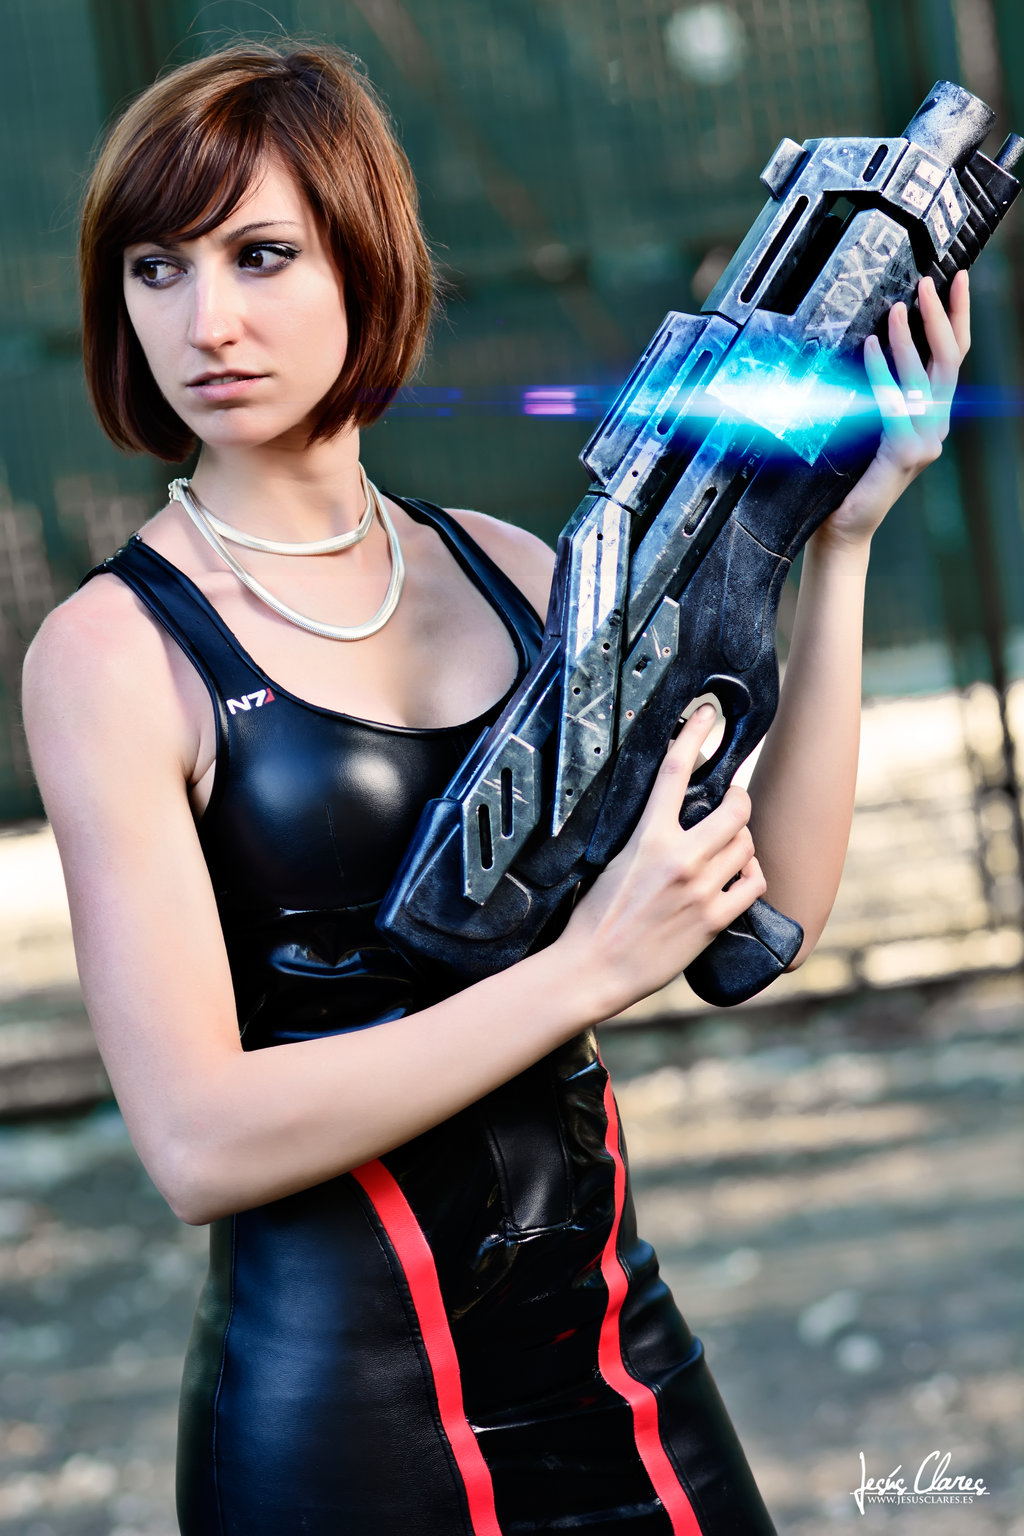 Maya Girls Wallpaper The Sci Fi Video Game Cosplay Of Nebulaluben Nebulaluben